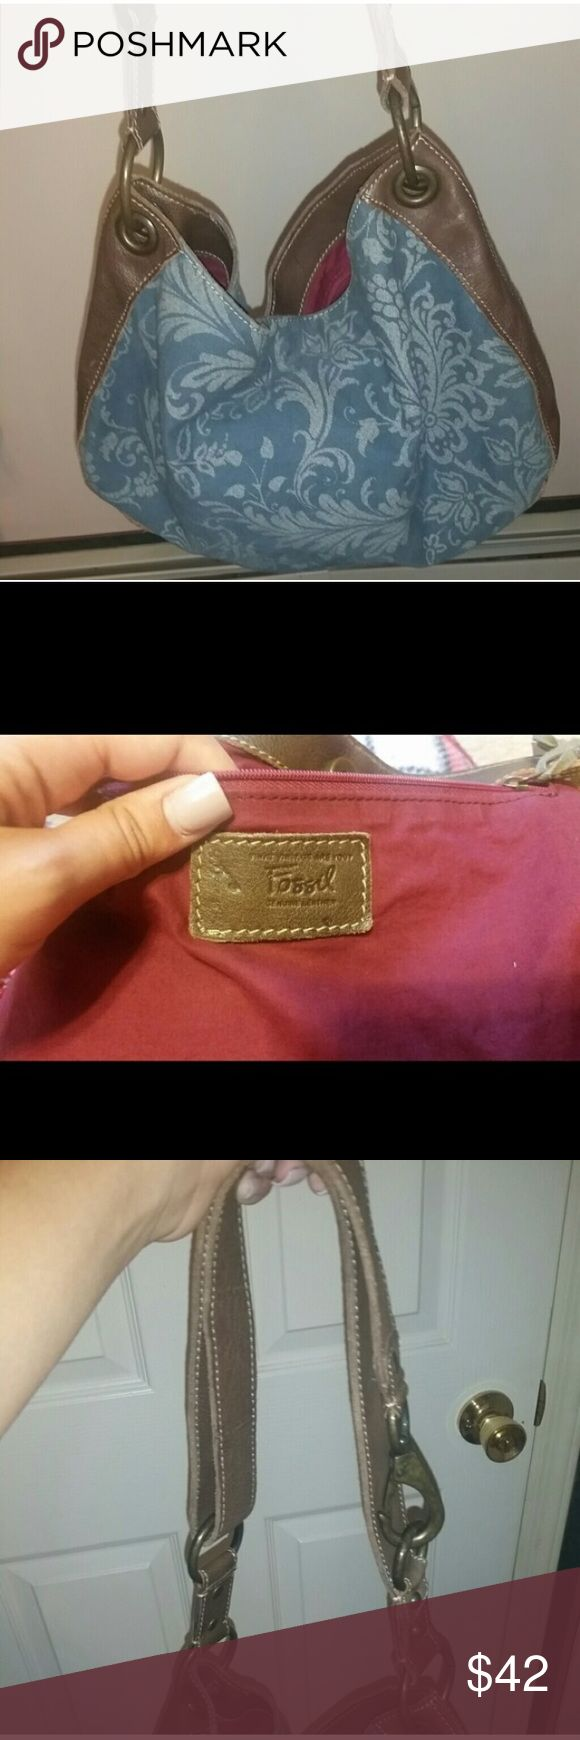 ⚡️Final⚡️ FOSSIL hobo shoulder bag Great condition FOSSIL hobo shoulder bag! Great condition! Almost new! Fossil Bags Hobos